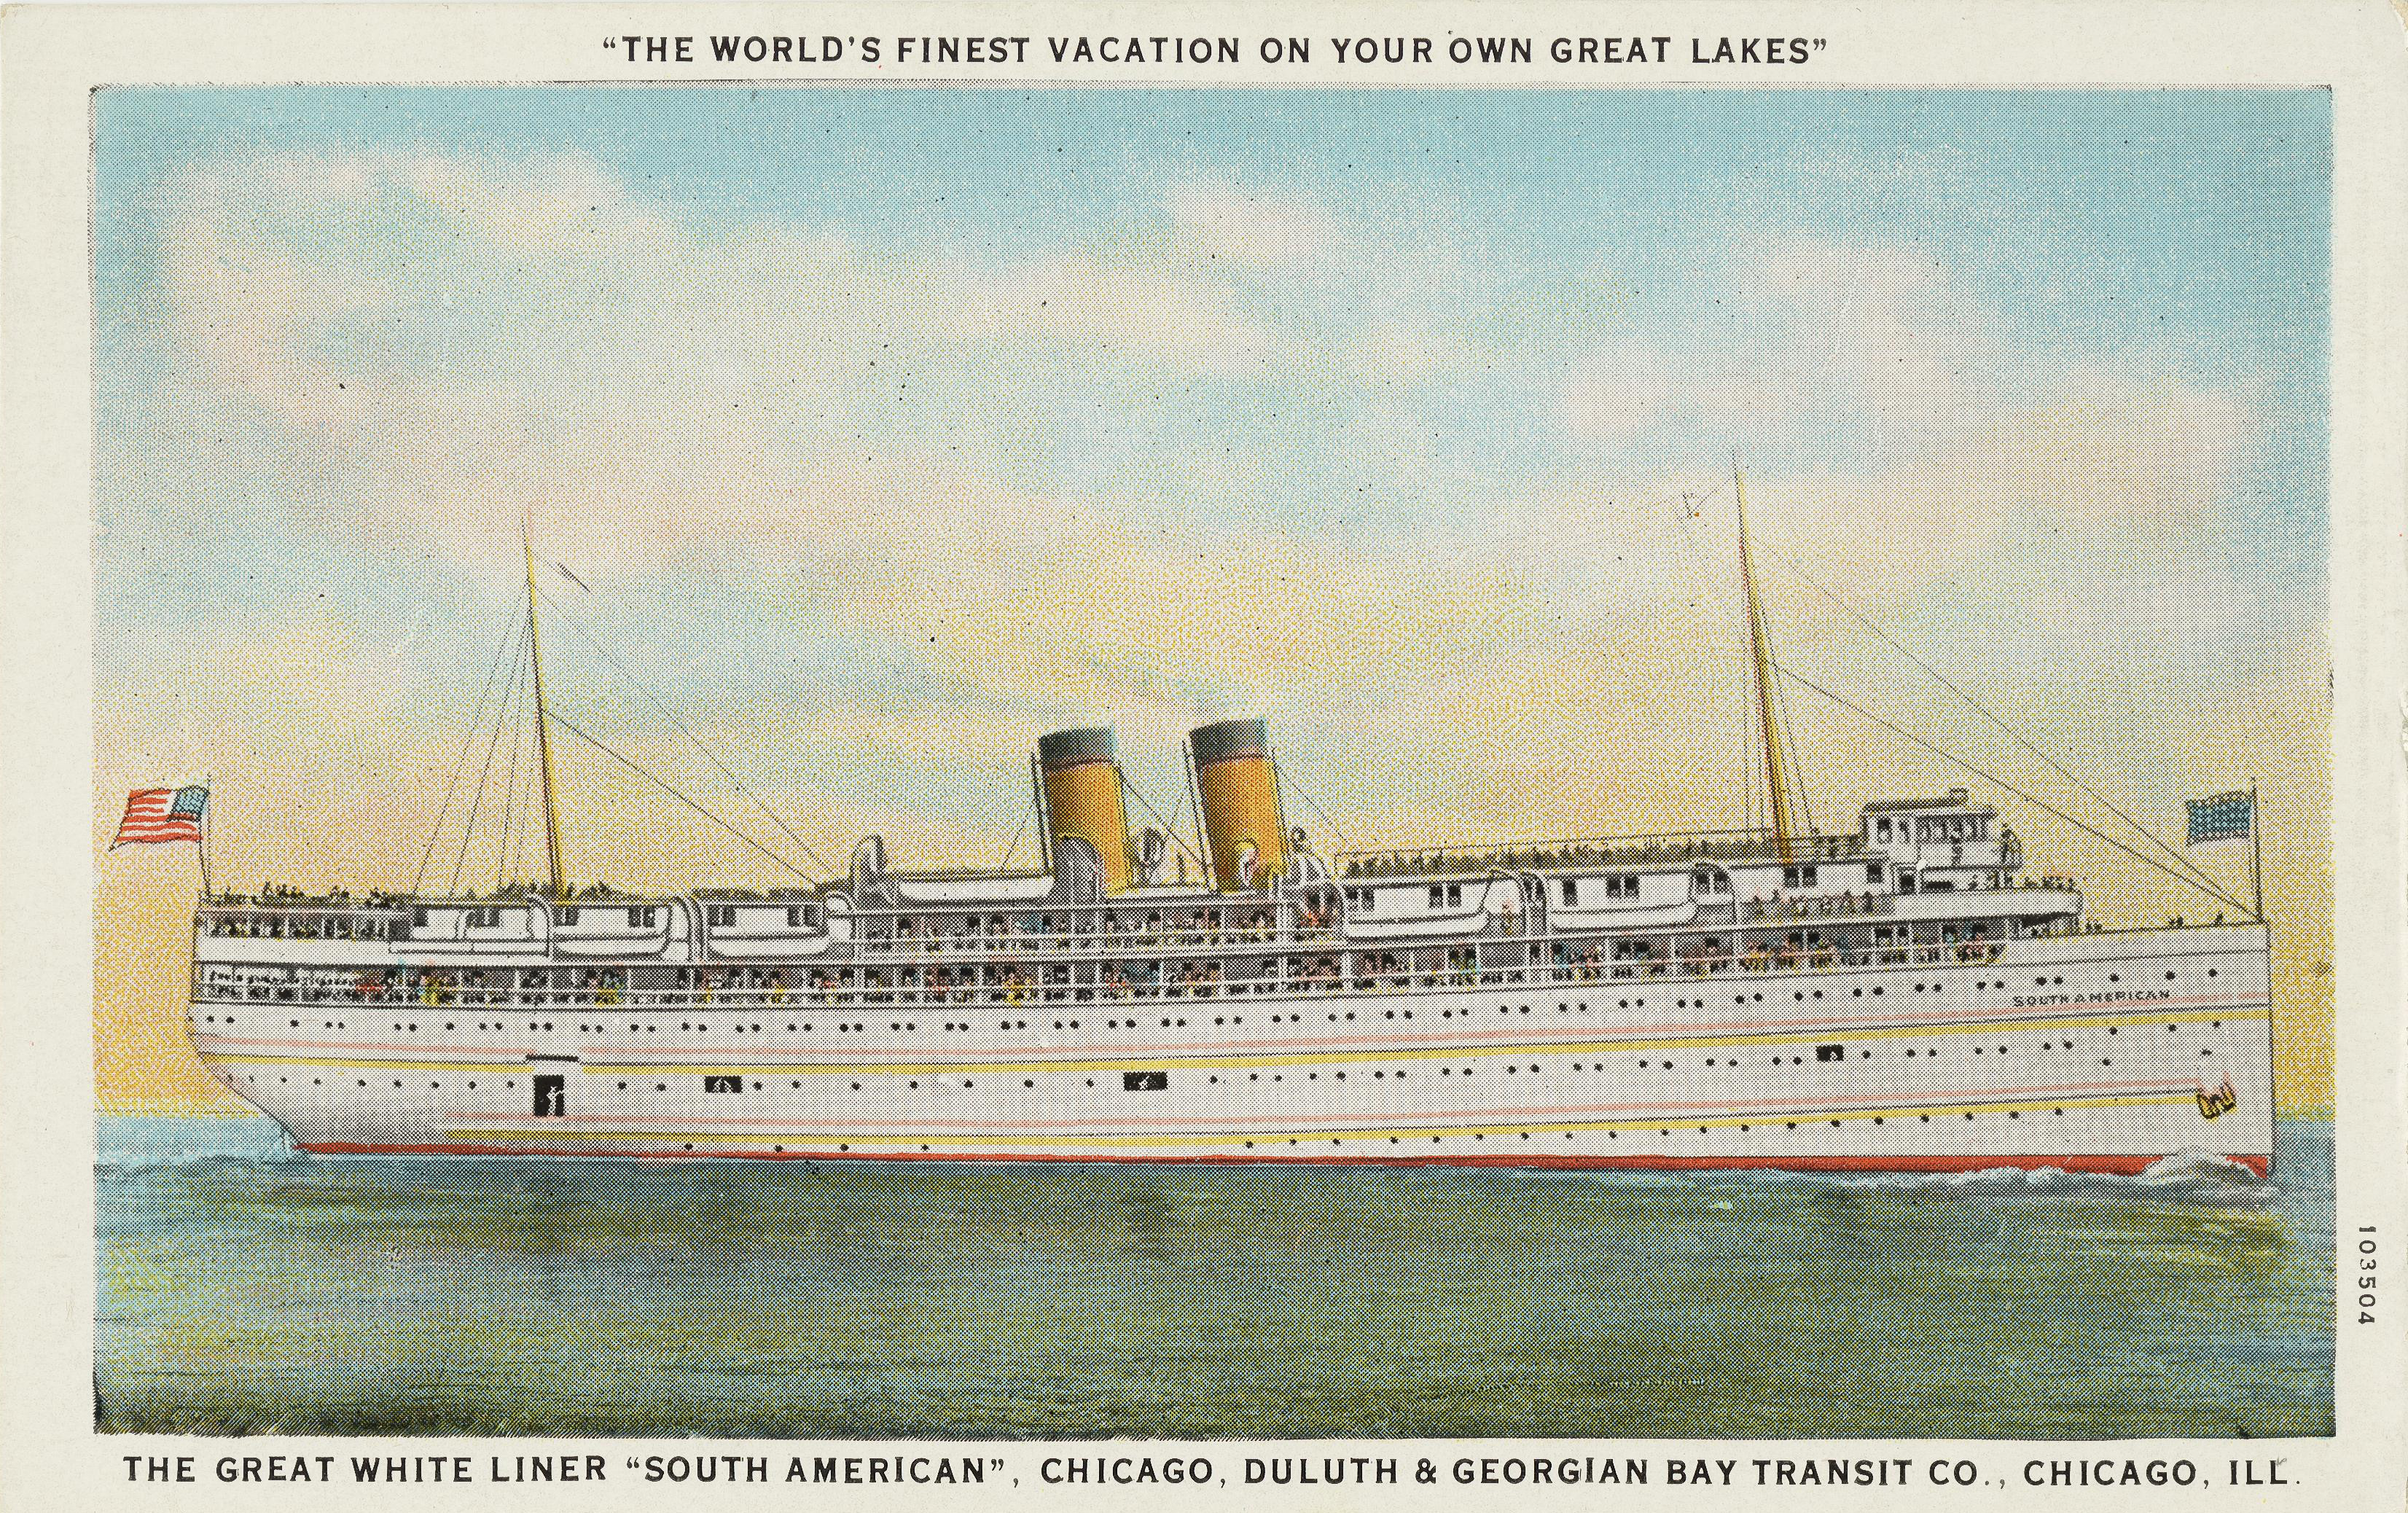 Postcard produced by Curt Teich & Co., picturing the S.S. South American, owned by Duluth & Georgian Bay Transit Co. in Chicago, Illinois, circa 1915-1930. Image from the University of Maryland Digital Collections, National Trust Library Historic Postcard Collection.